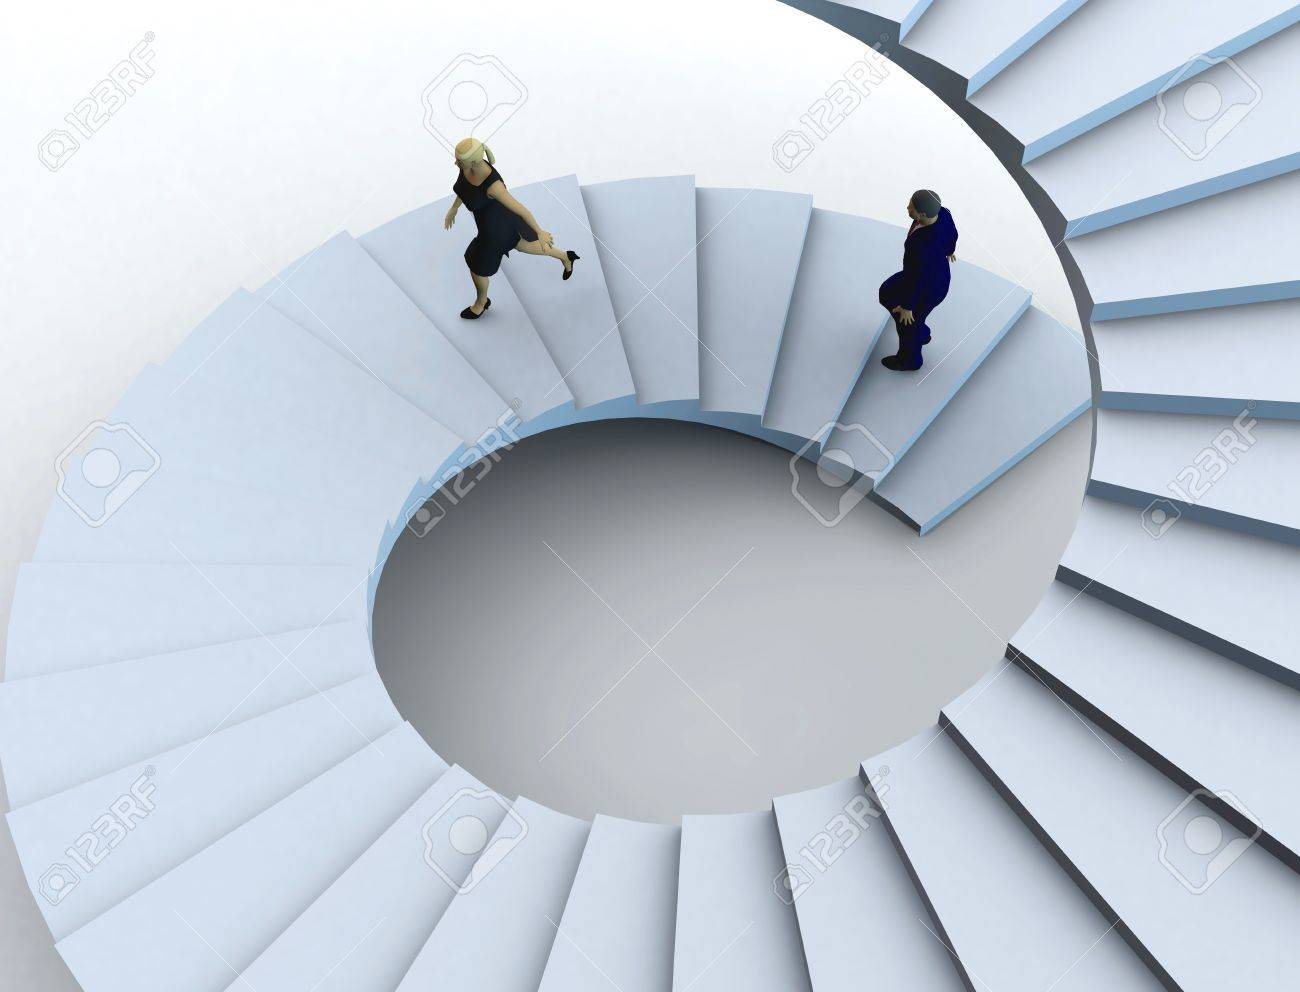 Businesswoman and a businessman going upstairs in a curved staircase. Stock Photo - 8910976